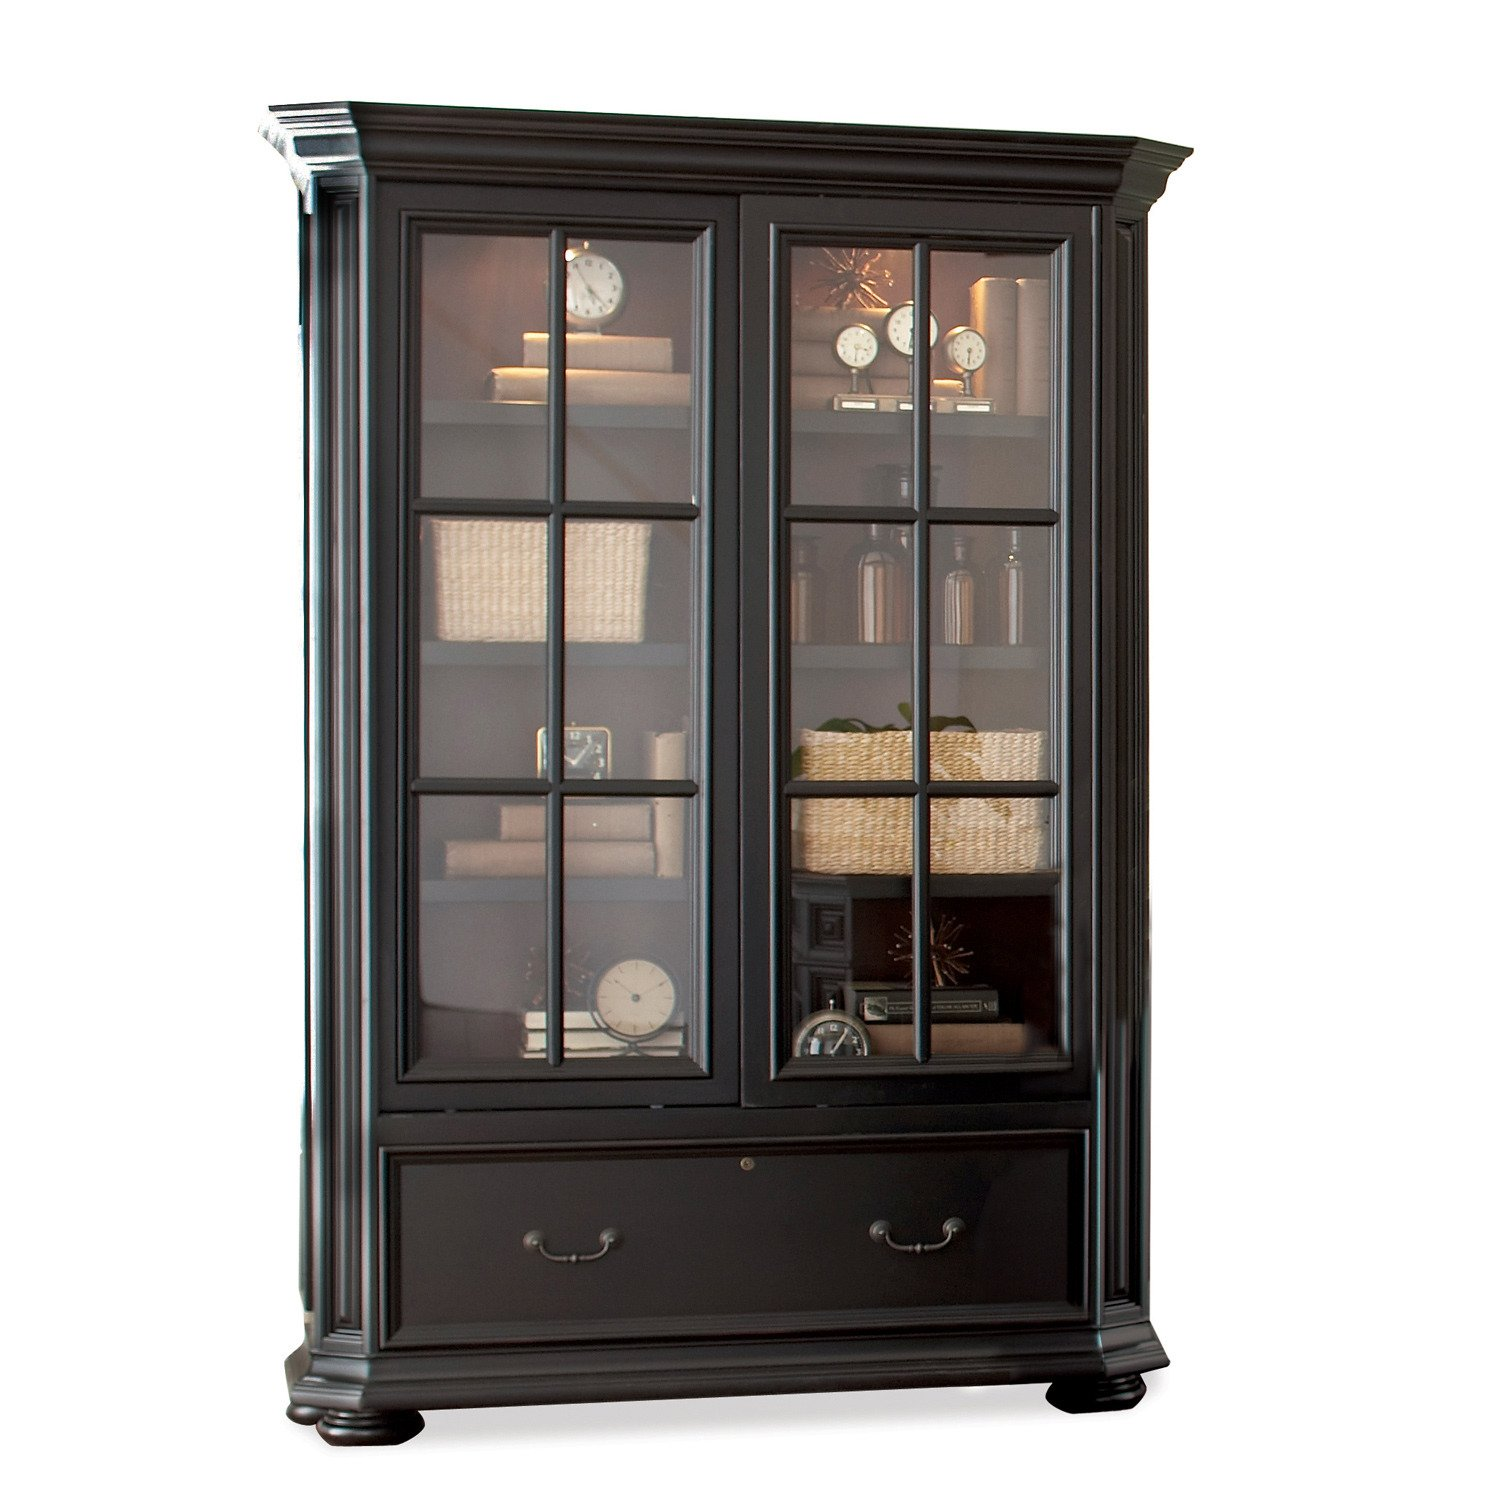 Amazon: Allegro Sliding Door Bookcase Cabinet: Kitchen & Dining